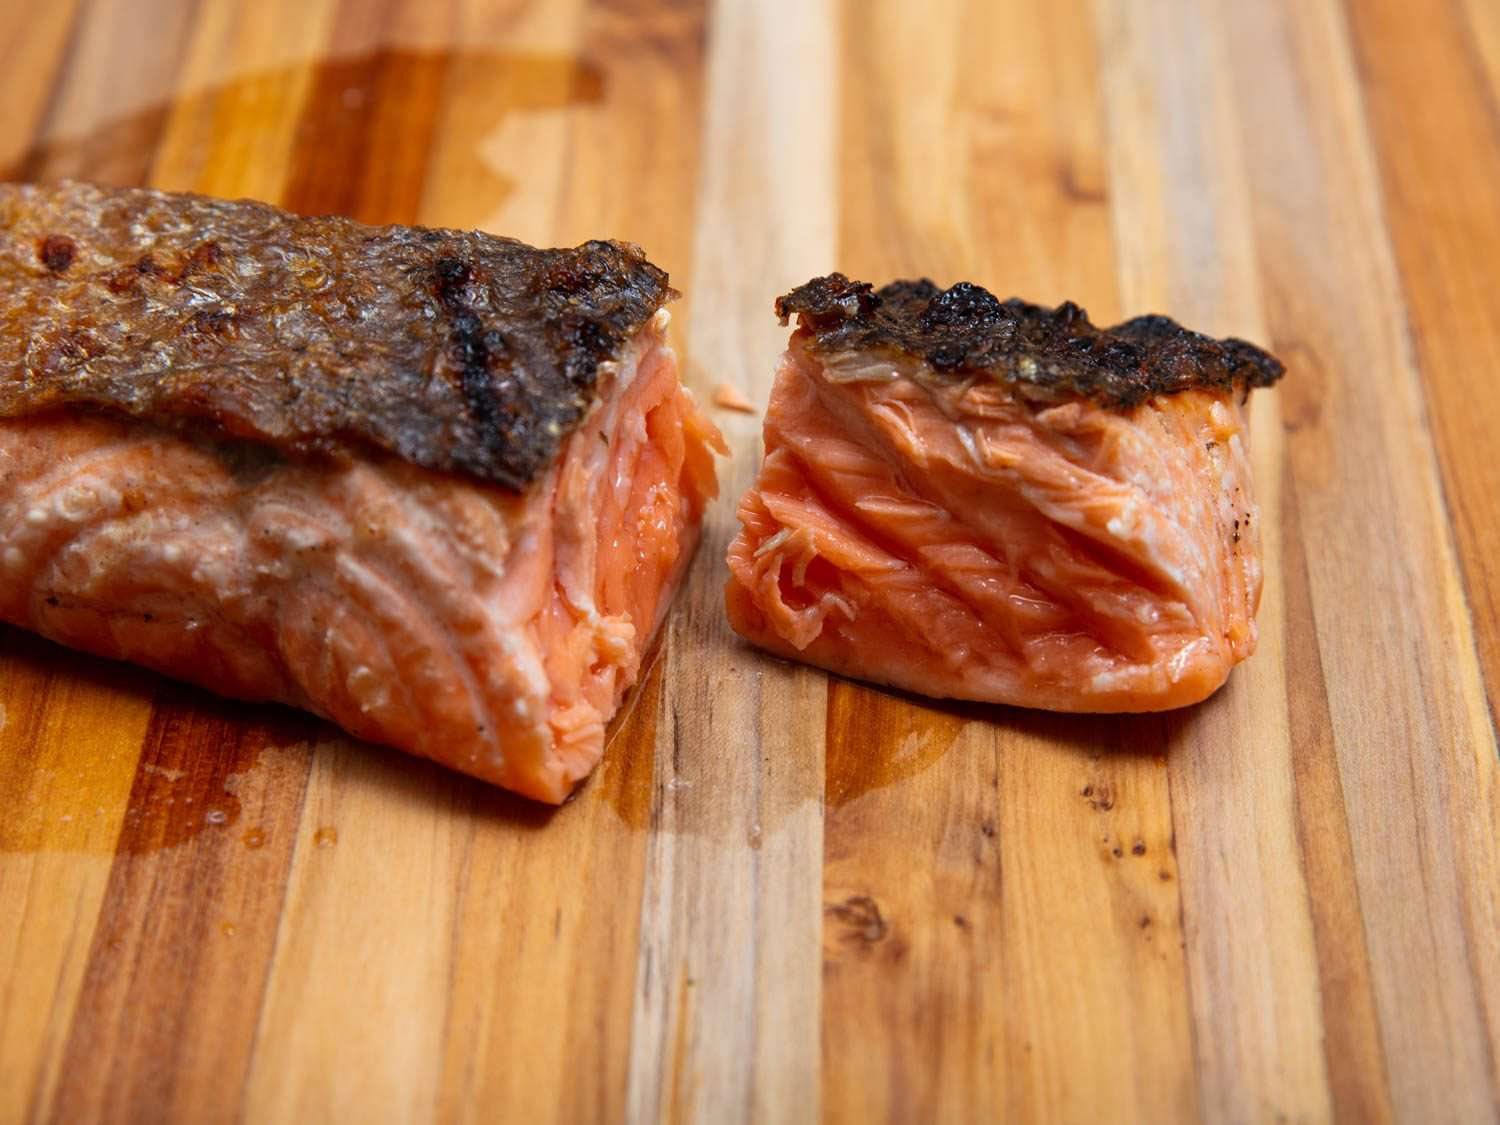 A piece of grilled salmon on a cutting board, showing a cross section to reveal a medium doneness, neither dry and well done nor rare.